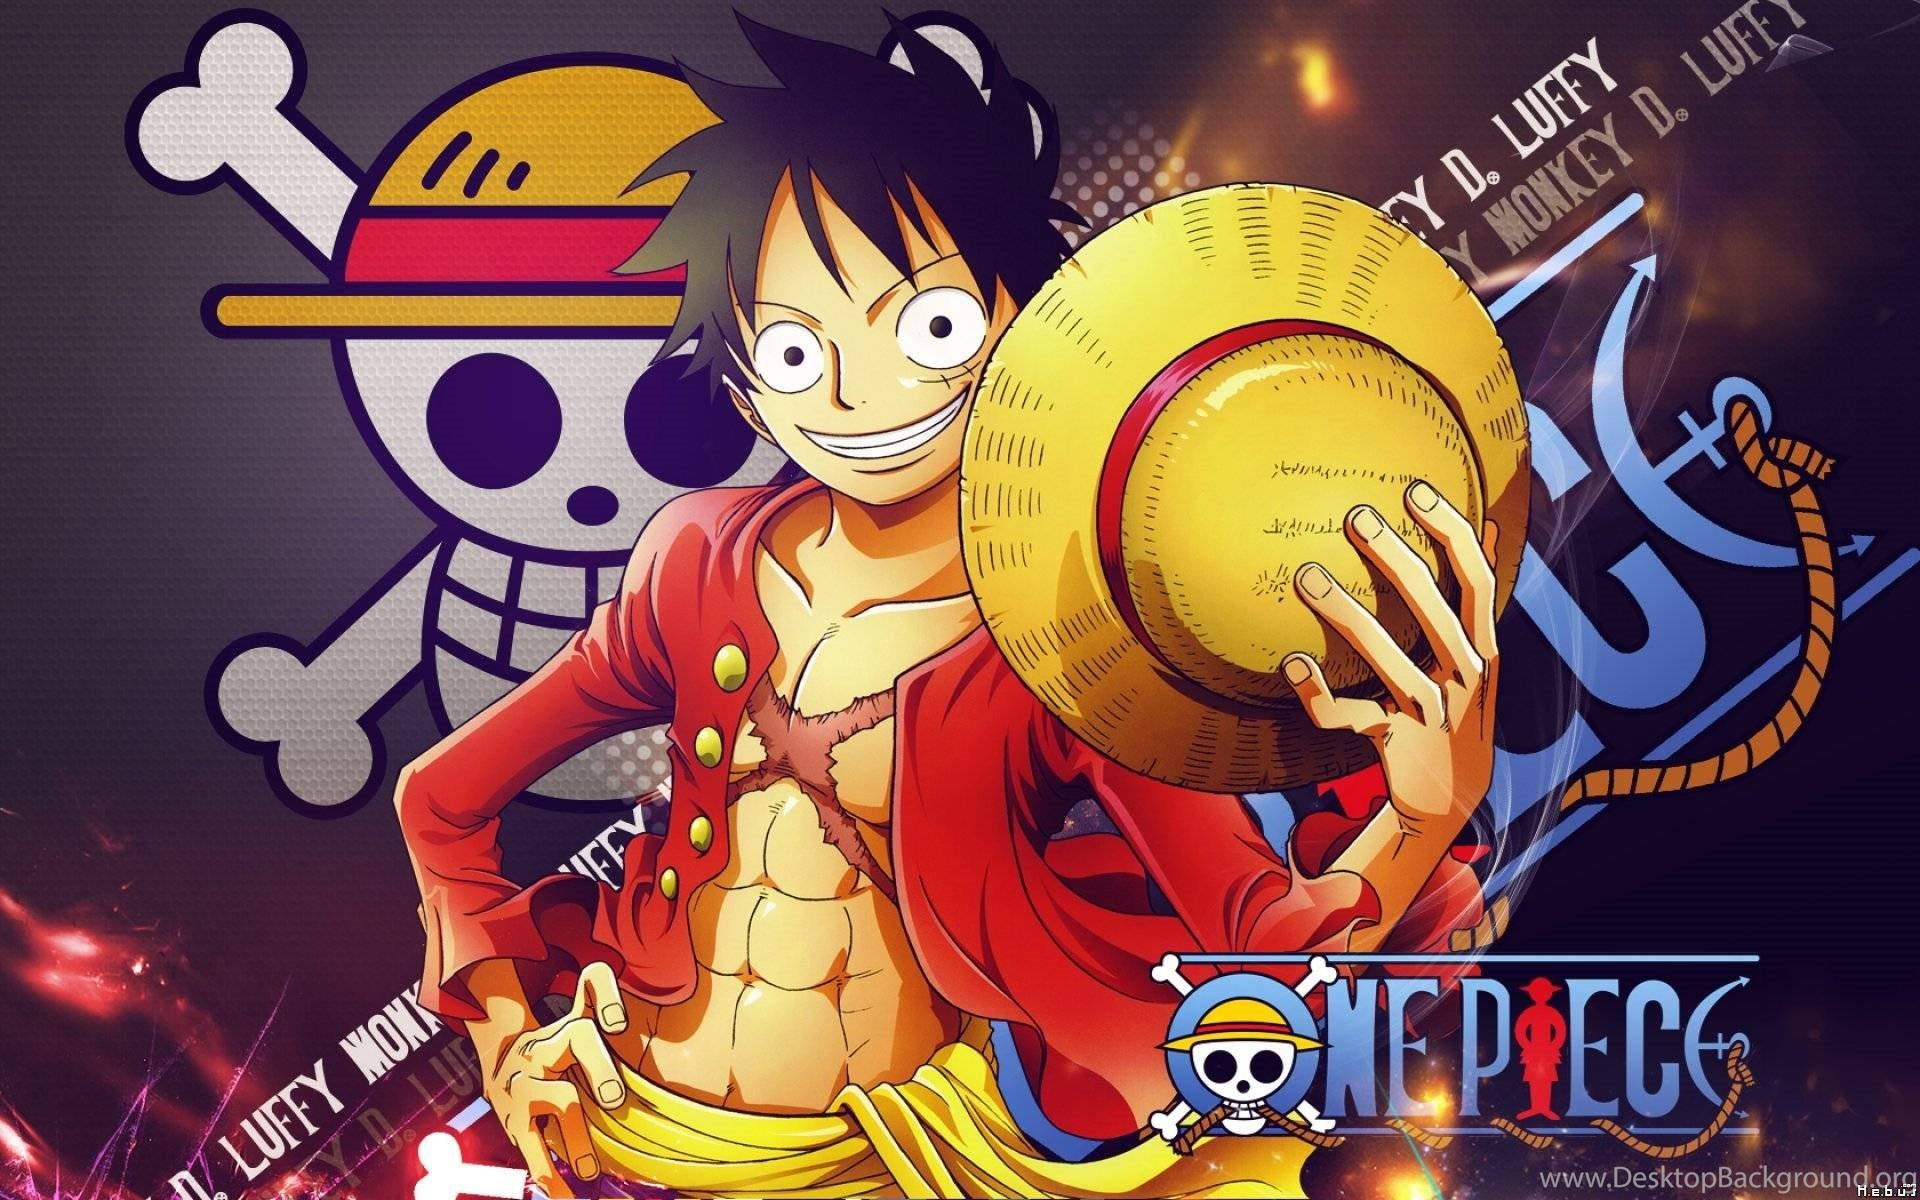 High Resolution Monkey D Luffy One Piece Wallpapers Hd 3 Full Size Desktop Background